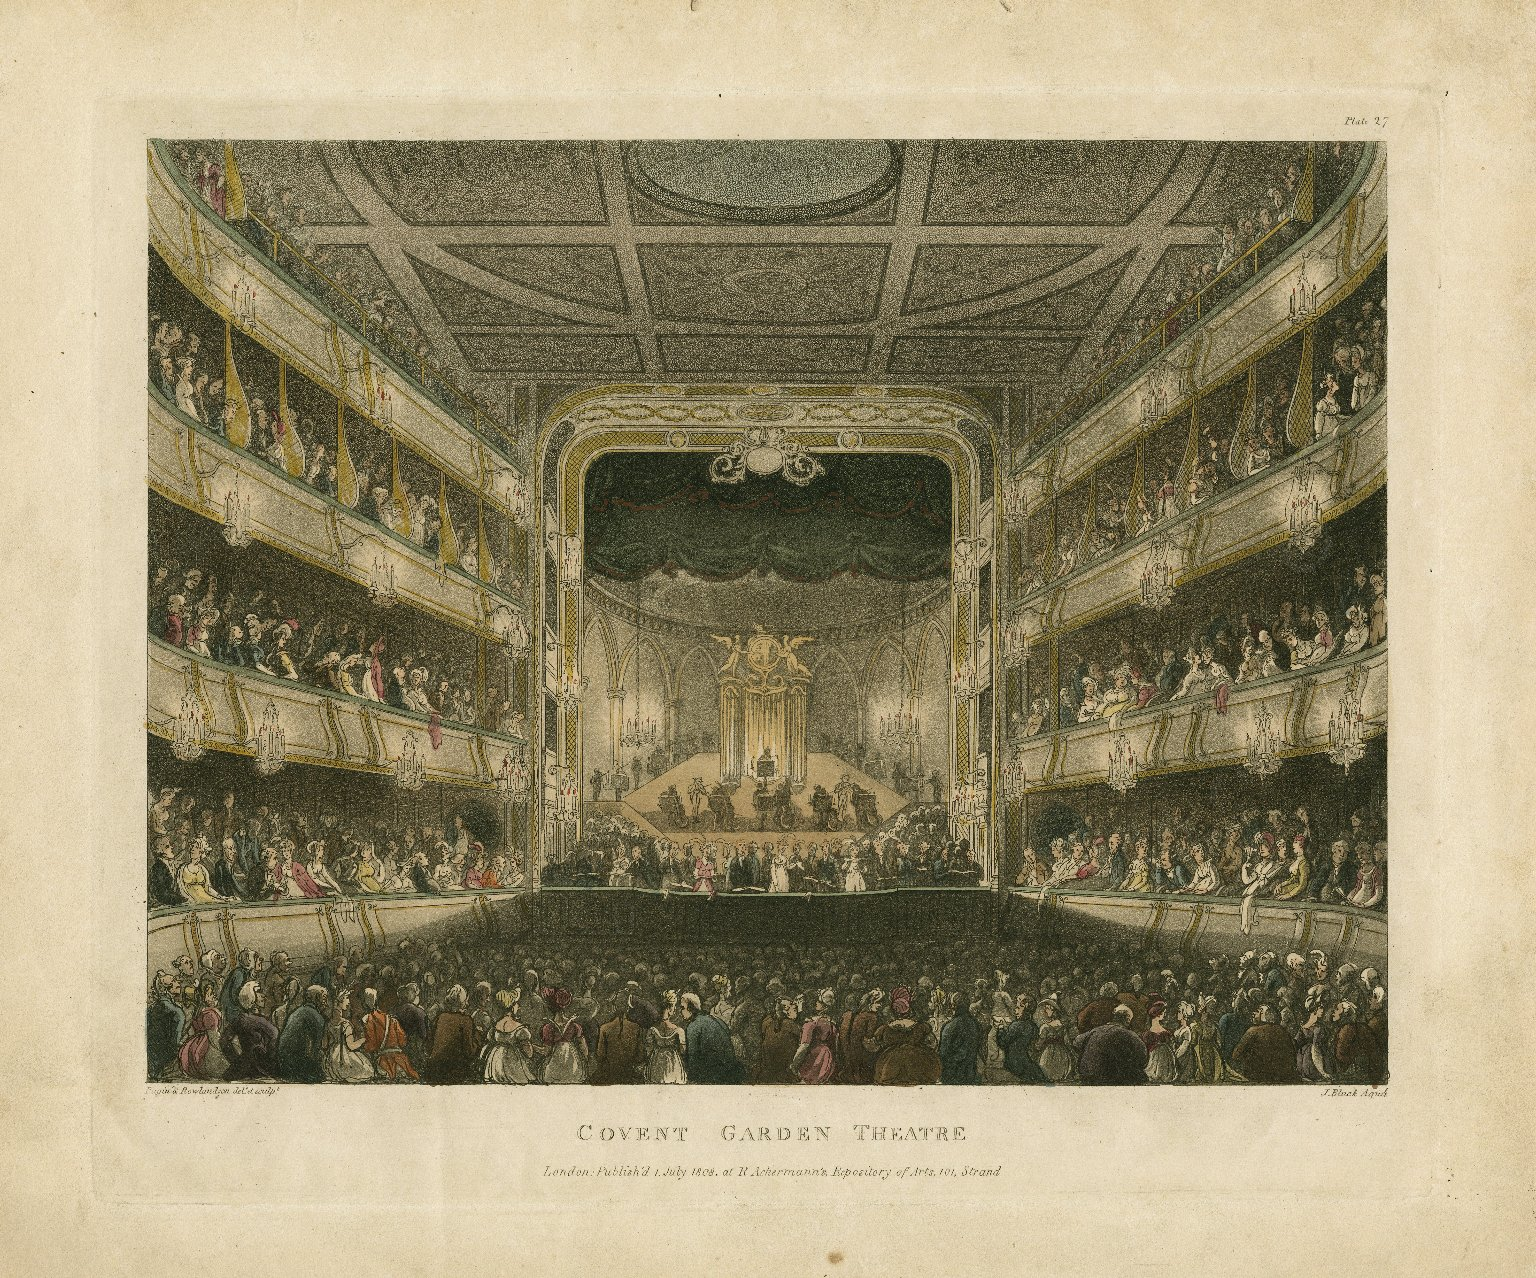 <b>Covent Garden, 1808</b>     	</br>Interior of the Covent Garden Theatre before it burned down in September 1808, London, July 1808</br><br/><b>Source: </b><i>Thomas Rowlandson, Covent Garden Theatre (Call number: ART File L847t1 C1 no.5), July 1808, Folger Digital Image Collection, University of Cincinnati Libraries Digital Collections, University of Cincinnati, http://digproj.libraries.uc.edu:8180/luna/servlet/s/n9ep4u</i>